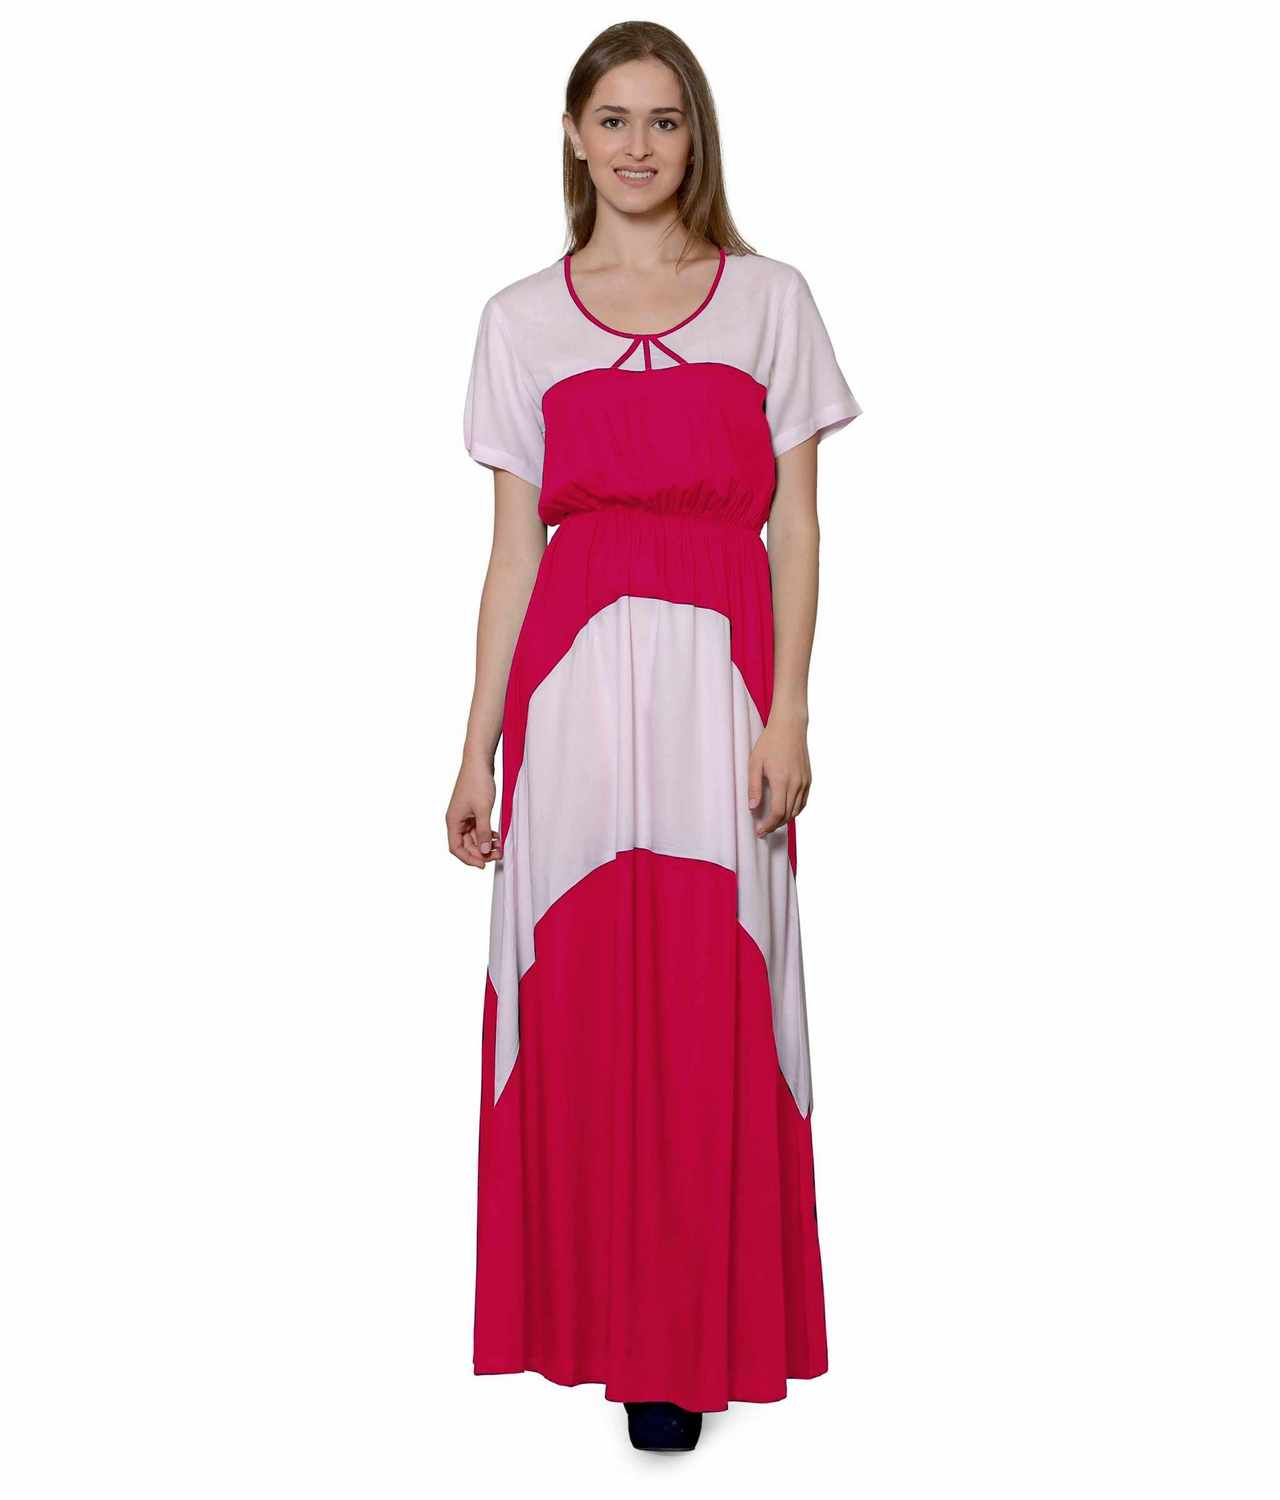 Color Block Slim Fit Maxi Dress Gown in Baby Pink:Fuchsia